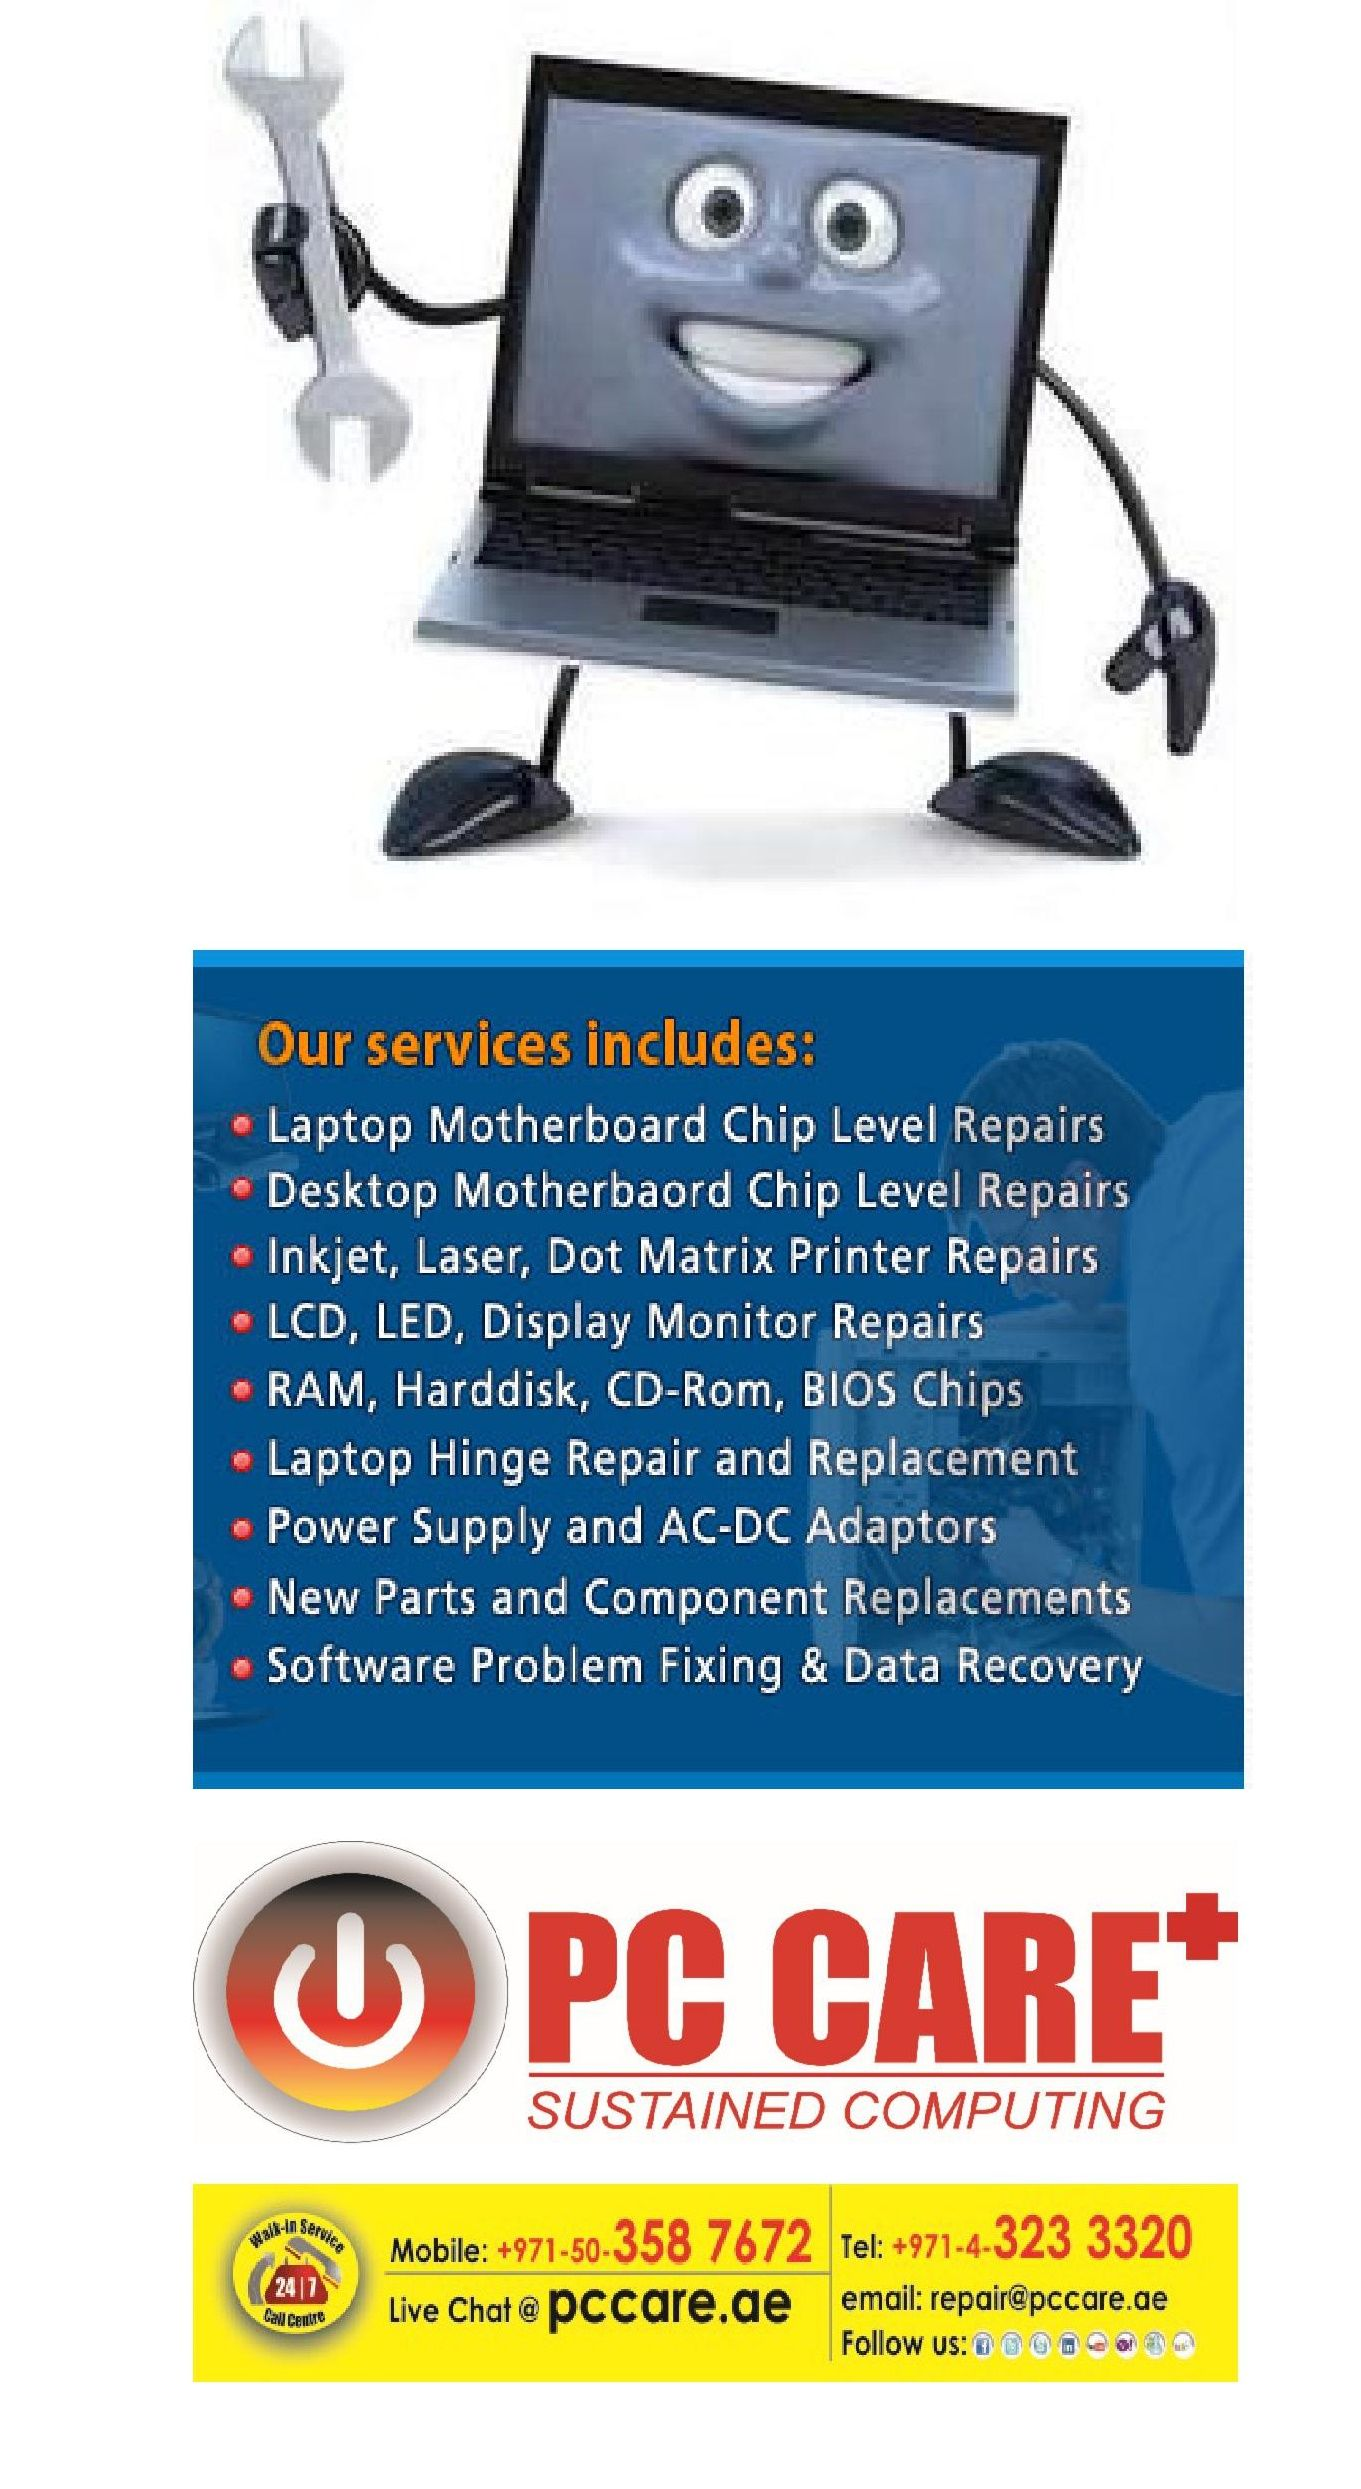 Want Onsite Computer & Laptop Repairs In Dubai  Whether you